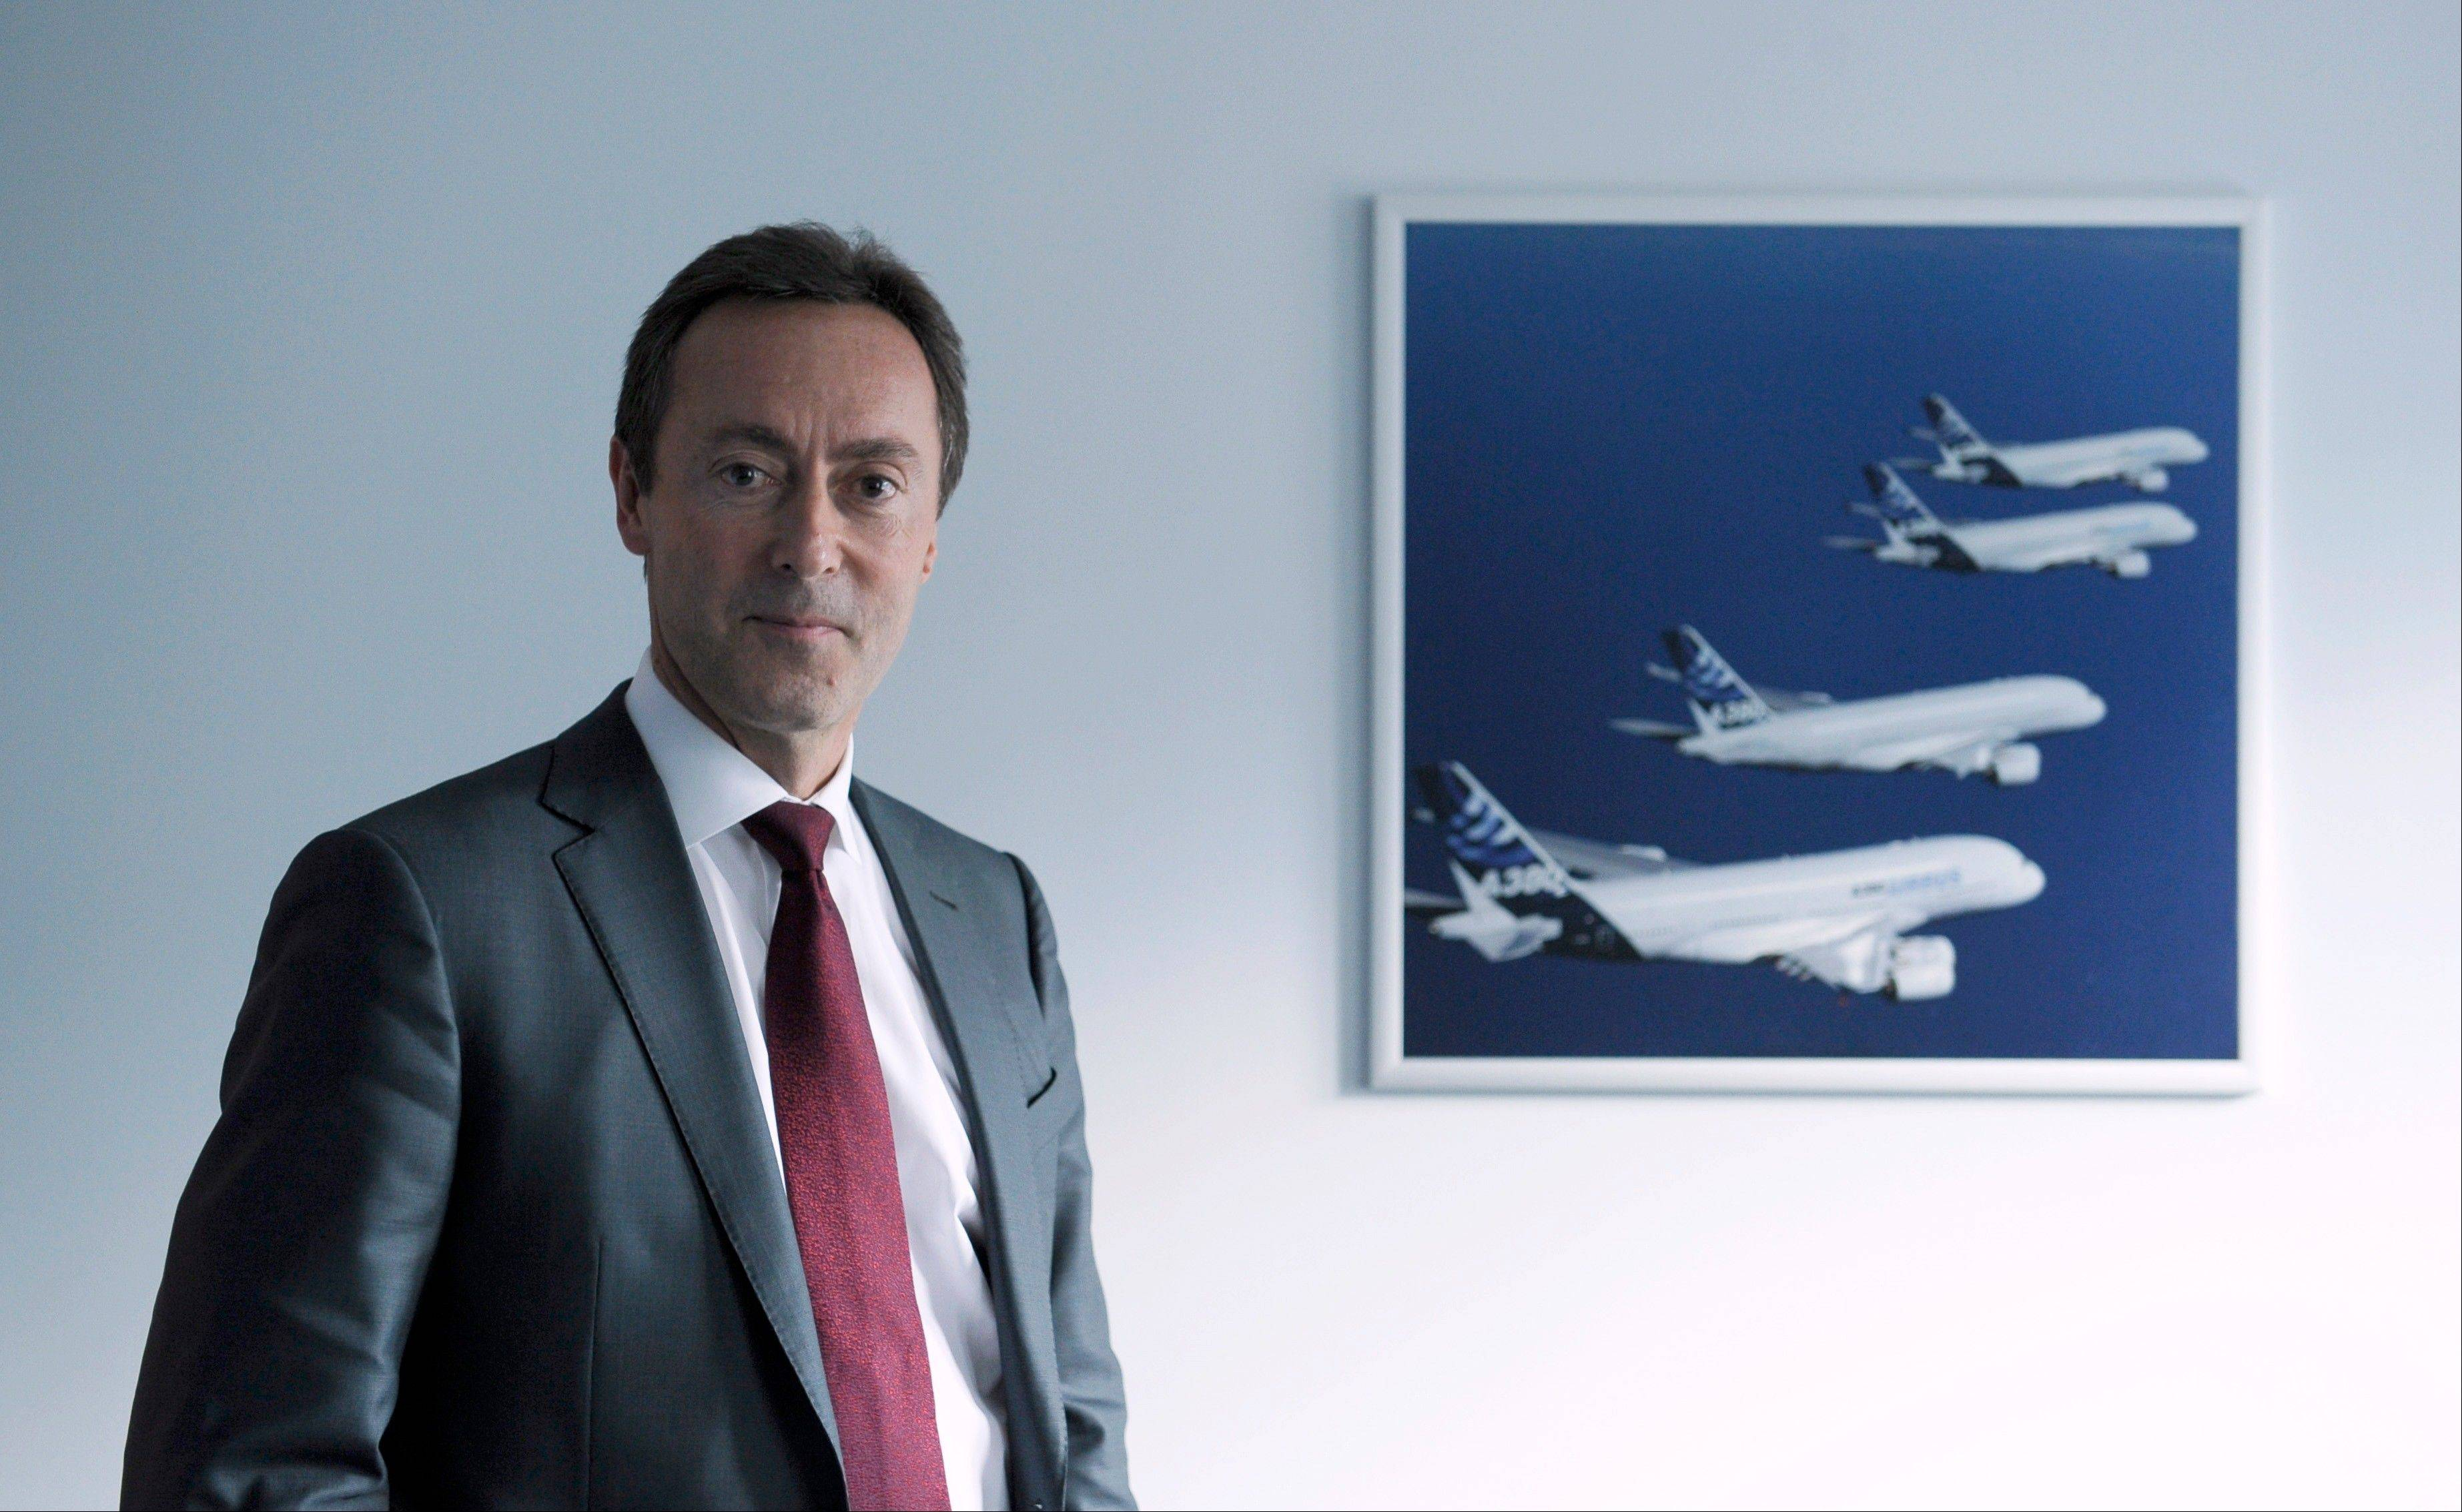 Airbus currently claims less than 20 percent of the U.S. commercial airplane market, but is aiming for 50 percent -- roughly the same as its market share worldwide, Airbus CEO Fabrice Bregier said in an interview Thursday.